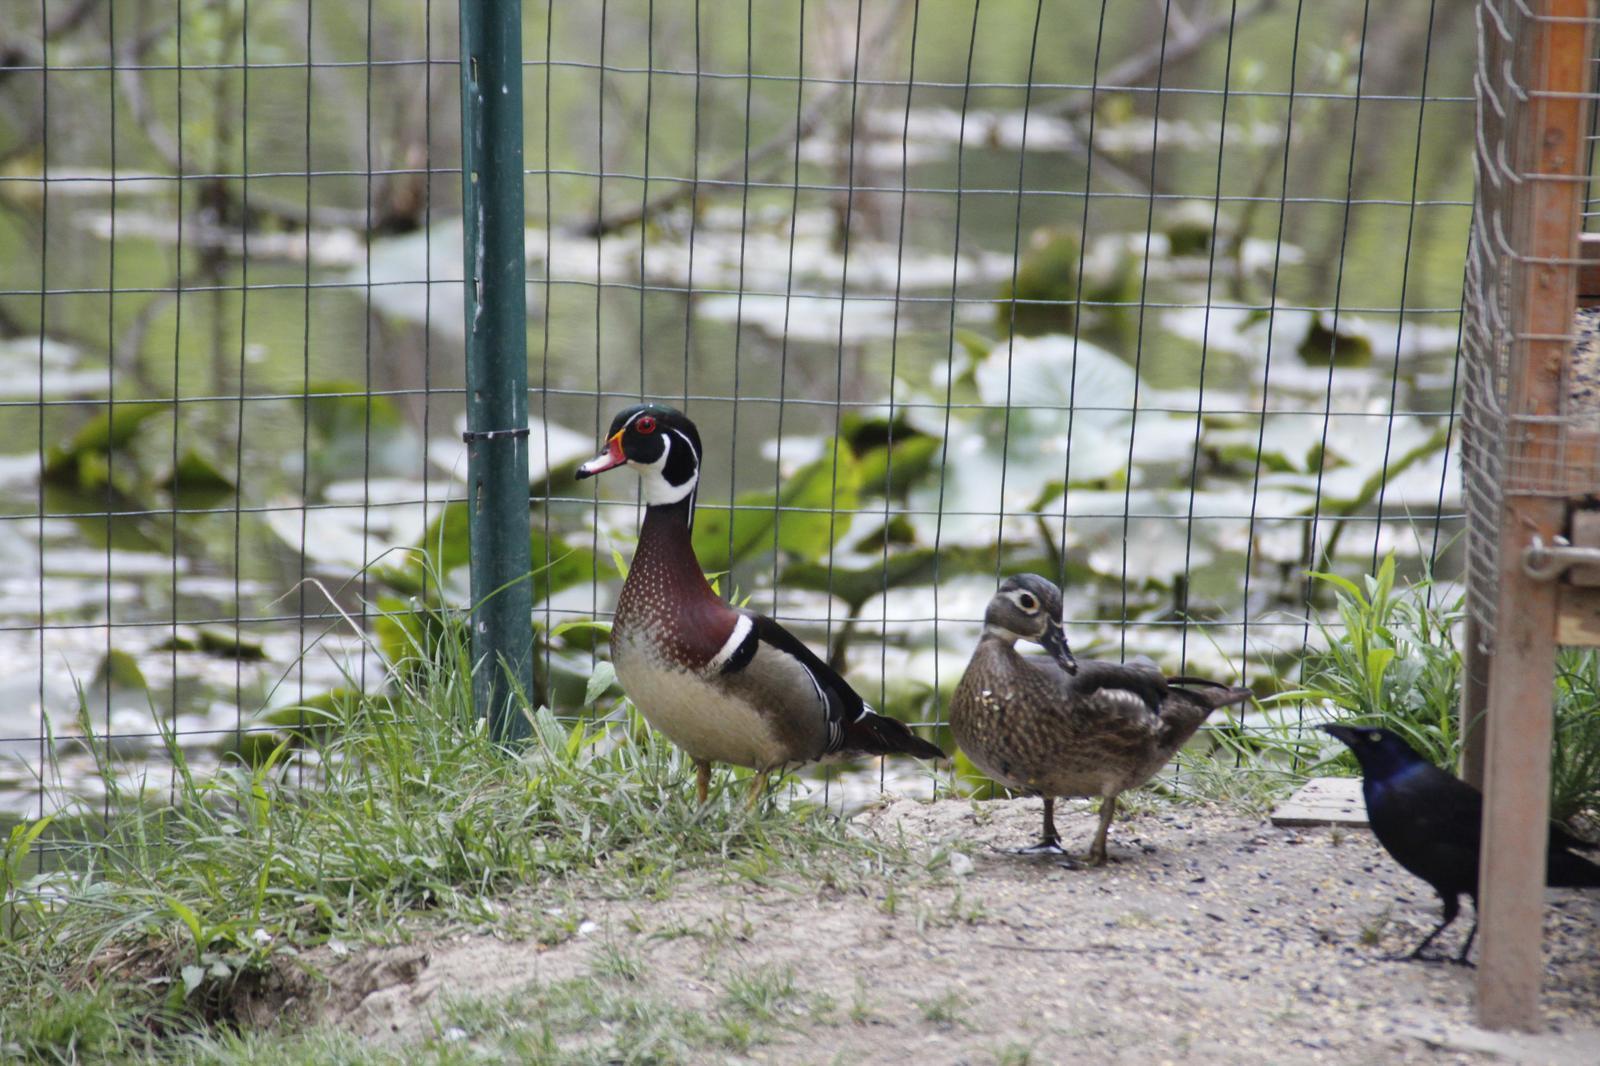 Wood Duck Photo by E Menzo